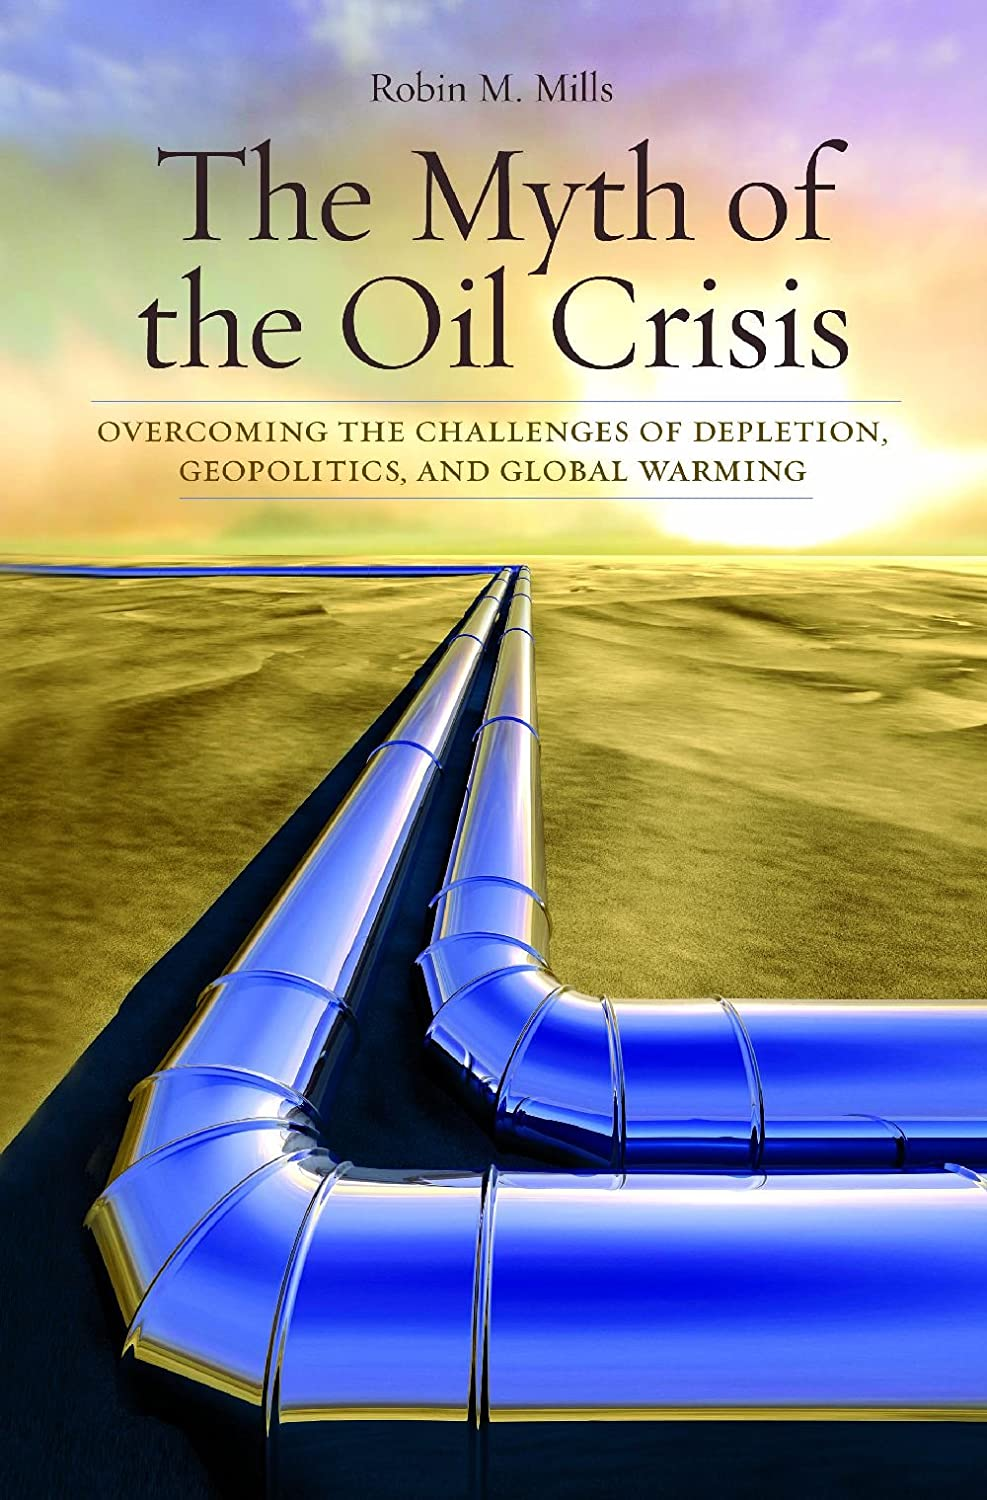 The Myth of the Oil Crisis: Overcoming the Challenges of Depletion, Geopolitics, and Global Warming Robin M. Mills